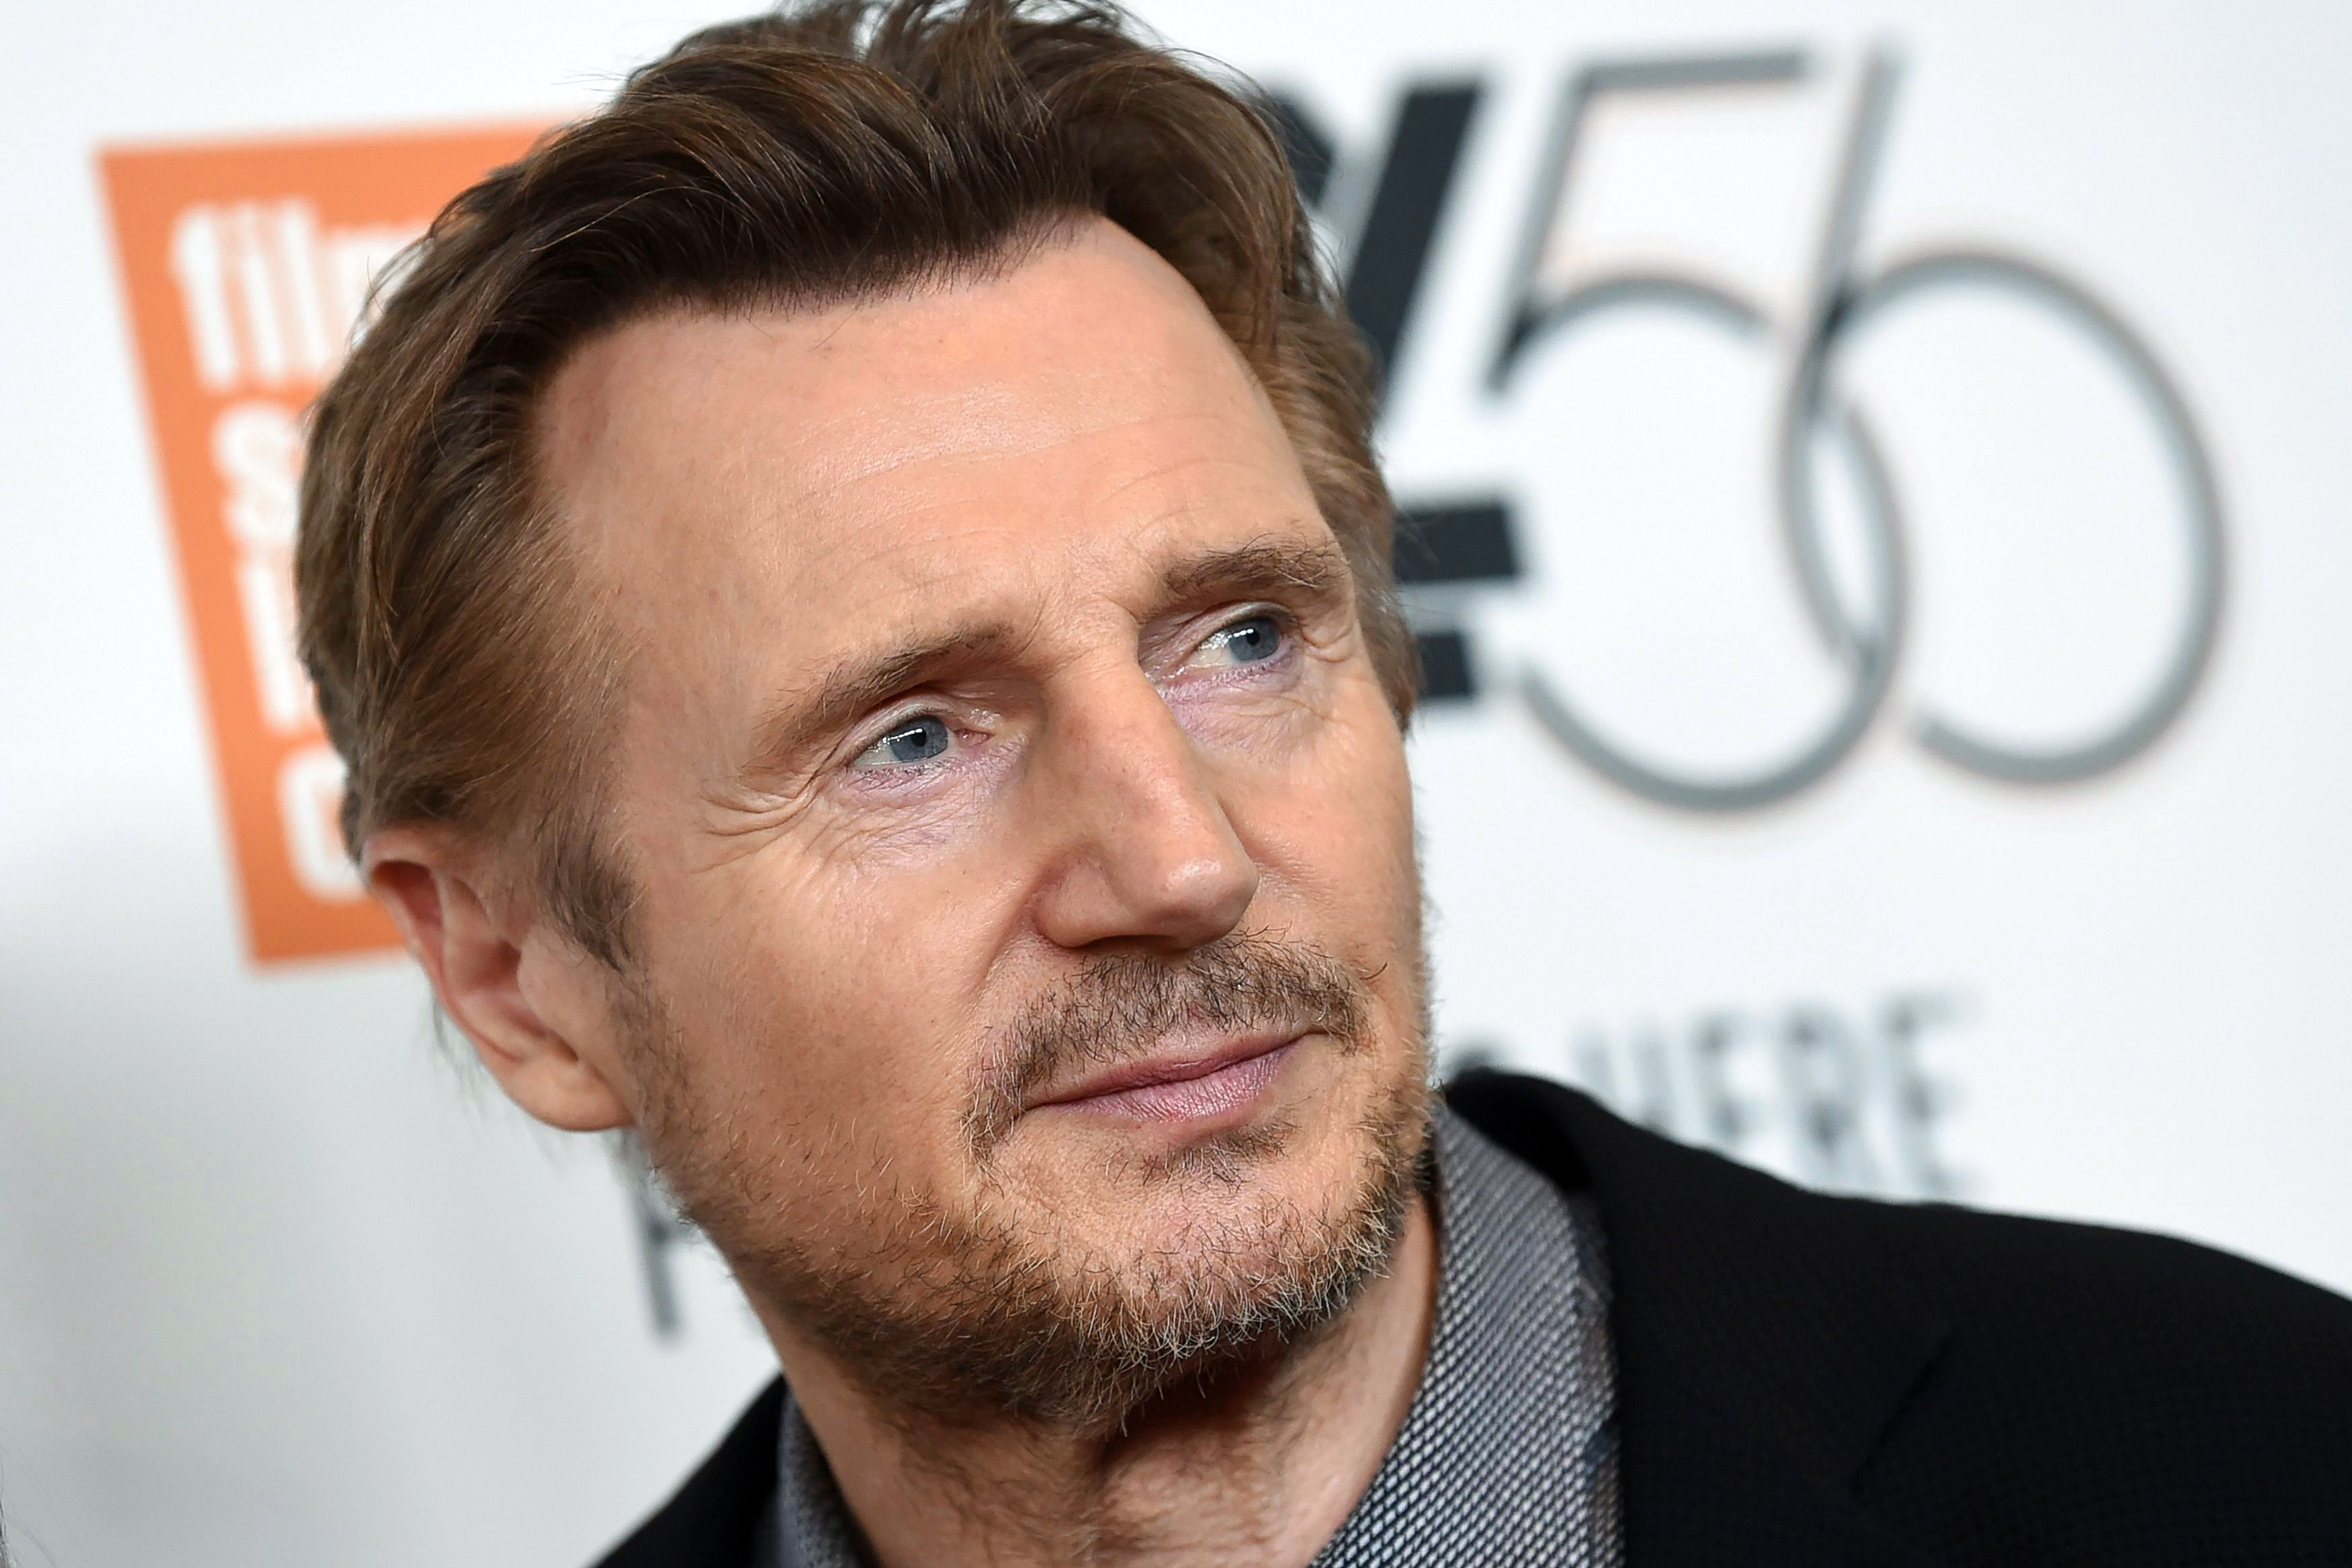 """Liam Neeson attends the premiere for """"The Ballad of Buster Scruggs"""" at Alice Tully Hall during the 56th New York Film Festival, in New York2018 NYFF - """"The Ballad of Buster Scruggs"""" Premiere, New York, USA - 04 Oct 2018"""